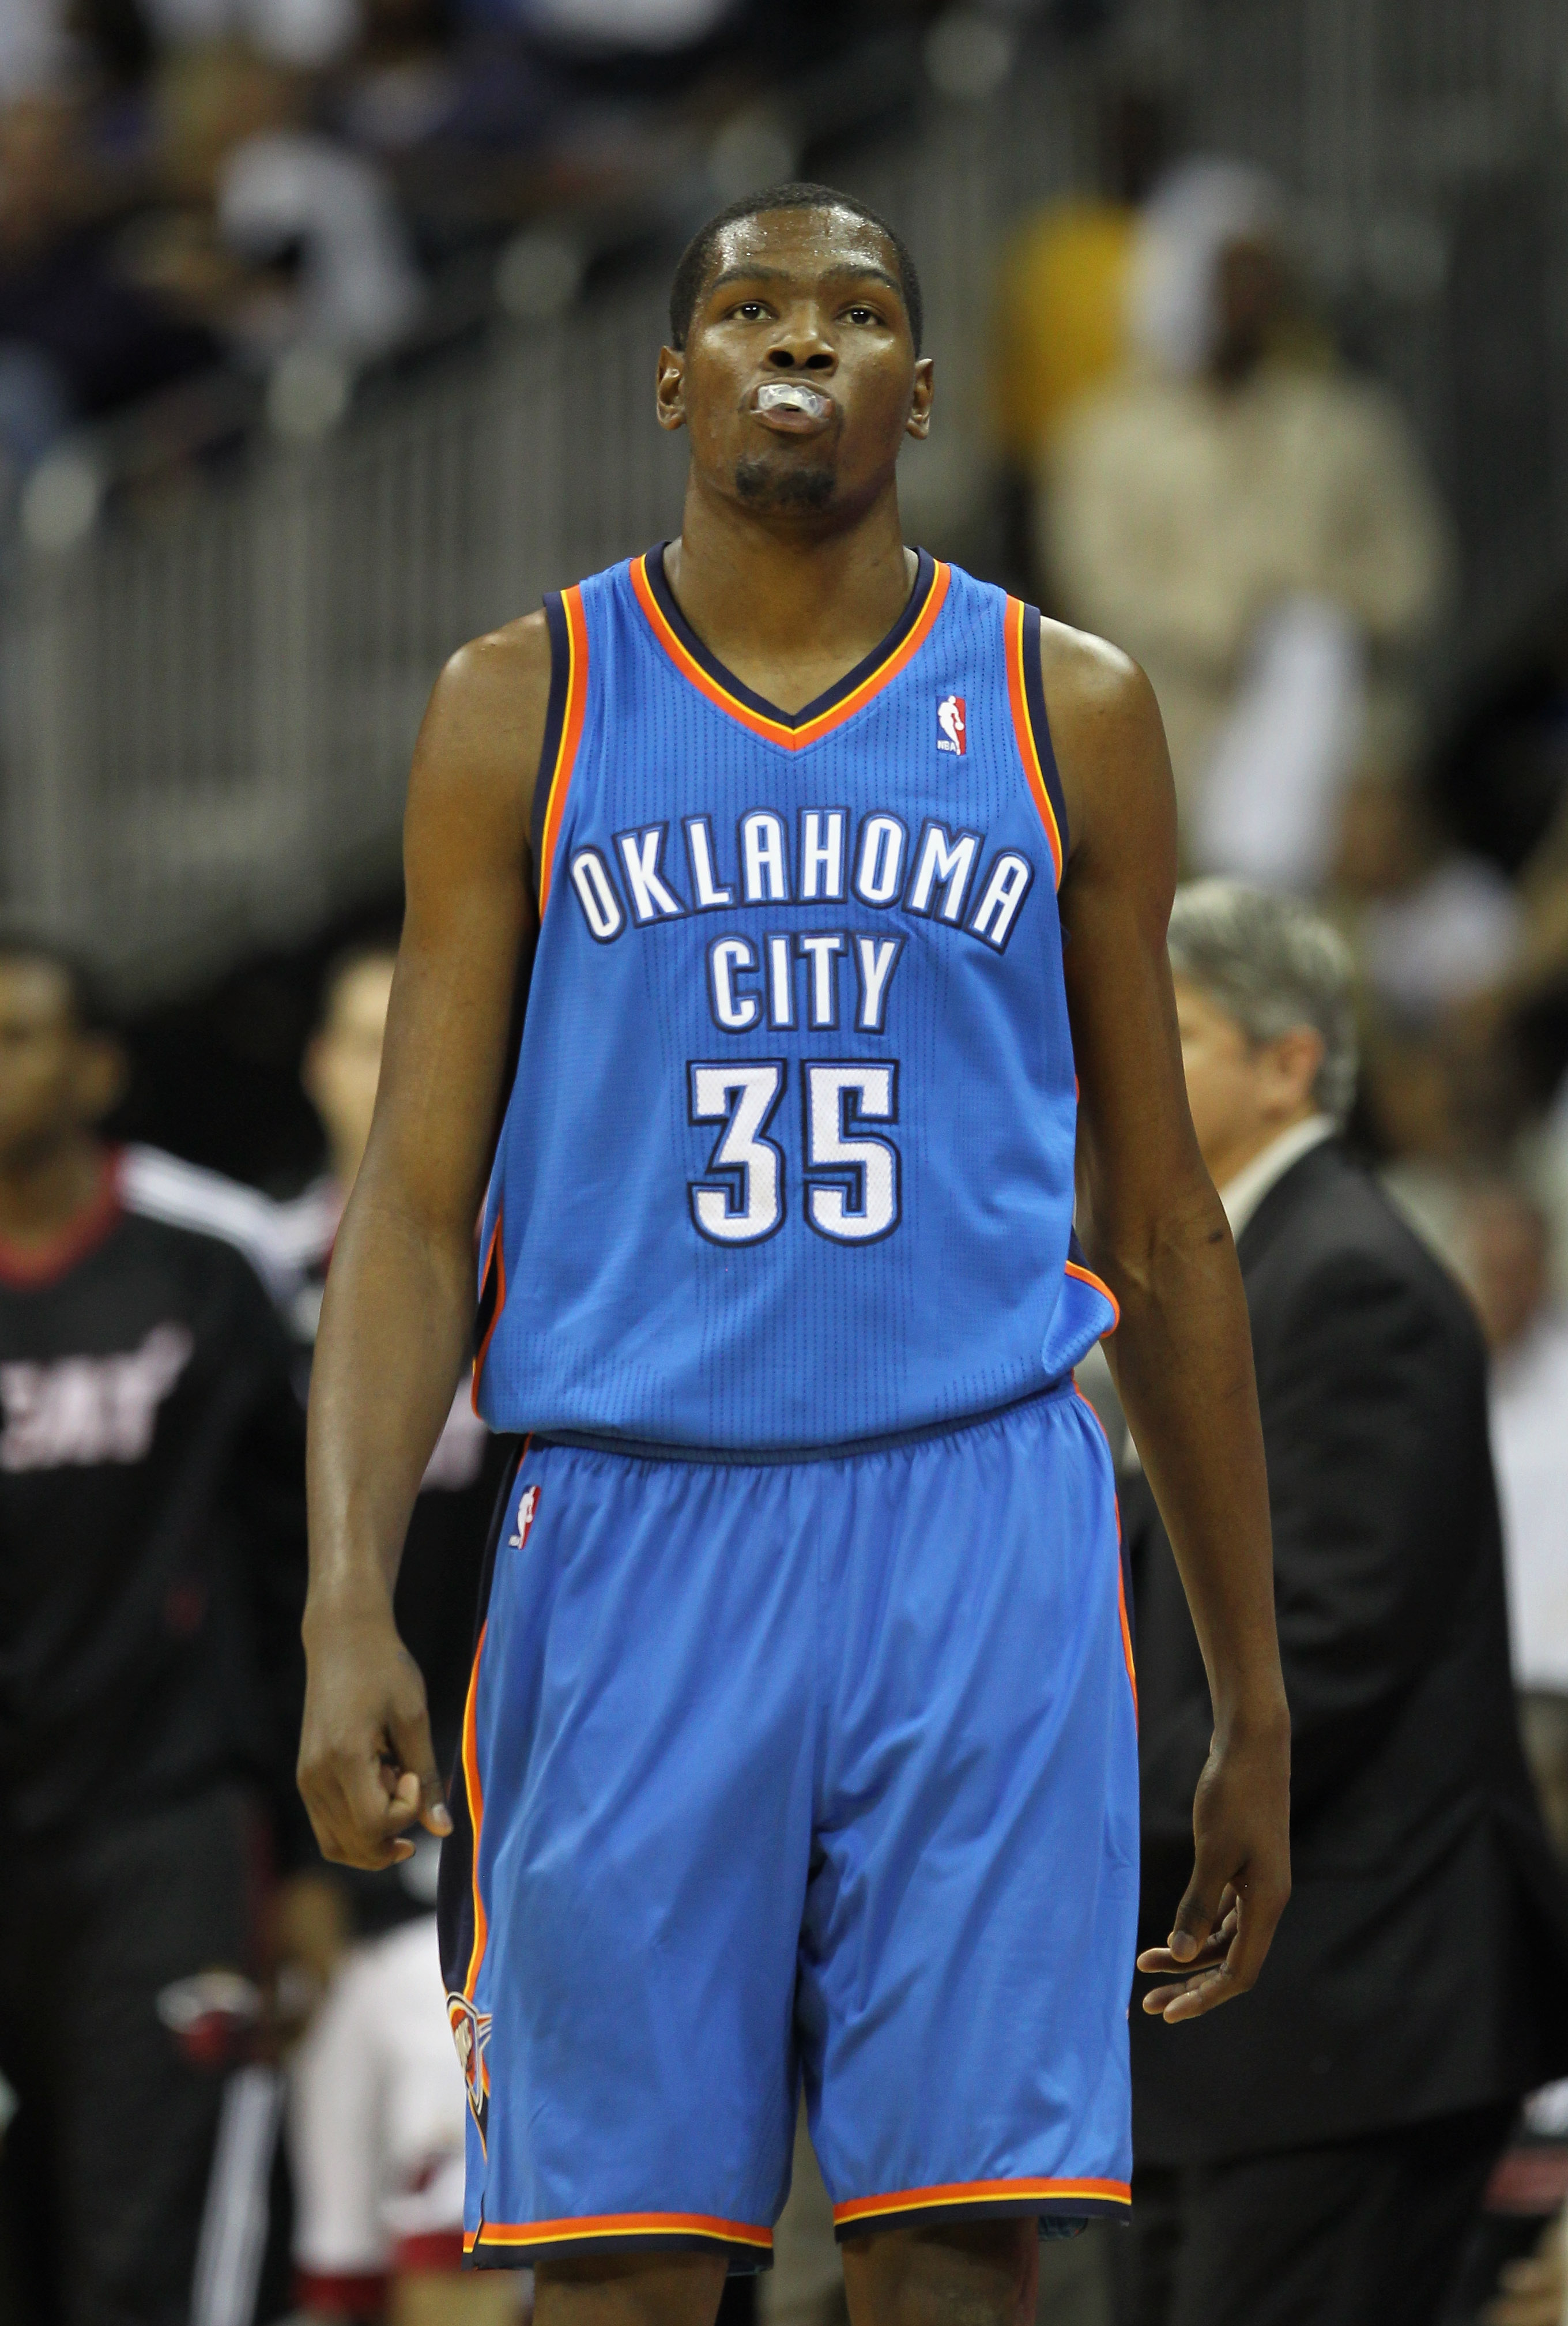 KANSAS CITY, MO - OCTOBER 08:  Kevin Durant #35 of the Oklahoma City Thunder walks back to the bench during the game against the Miami Heat on October 8, 2010 at the Sprint Center in Kansas City, Missouri.  (Photo by Jamie Squire/Getty Images)